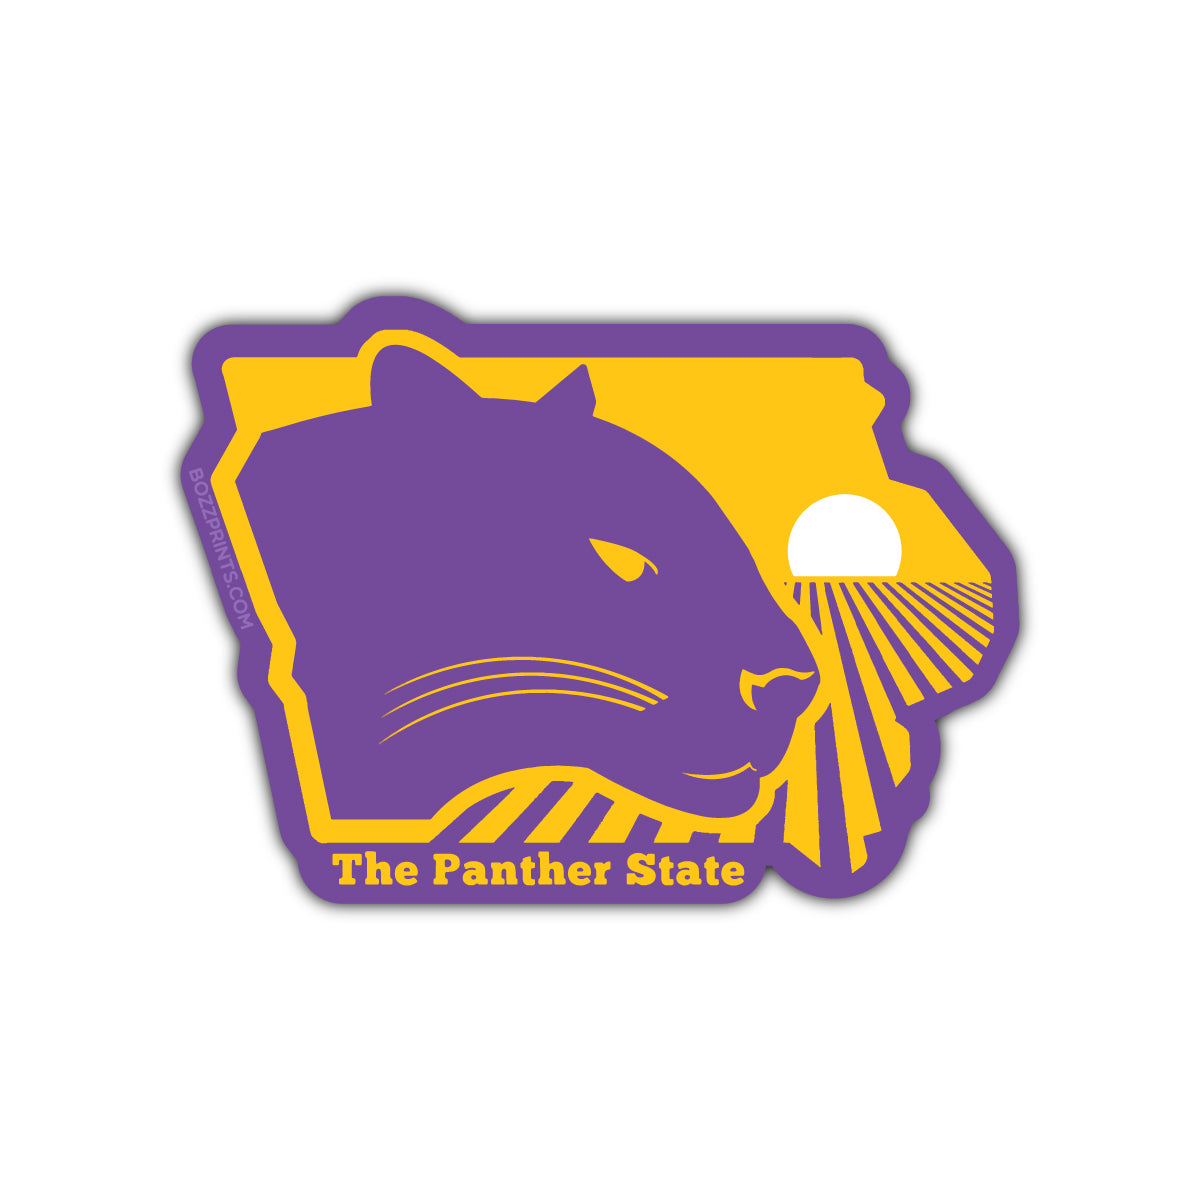 The Panther State